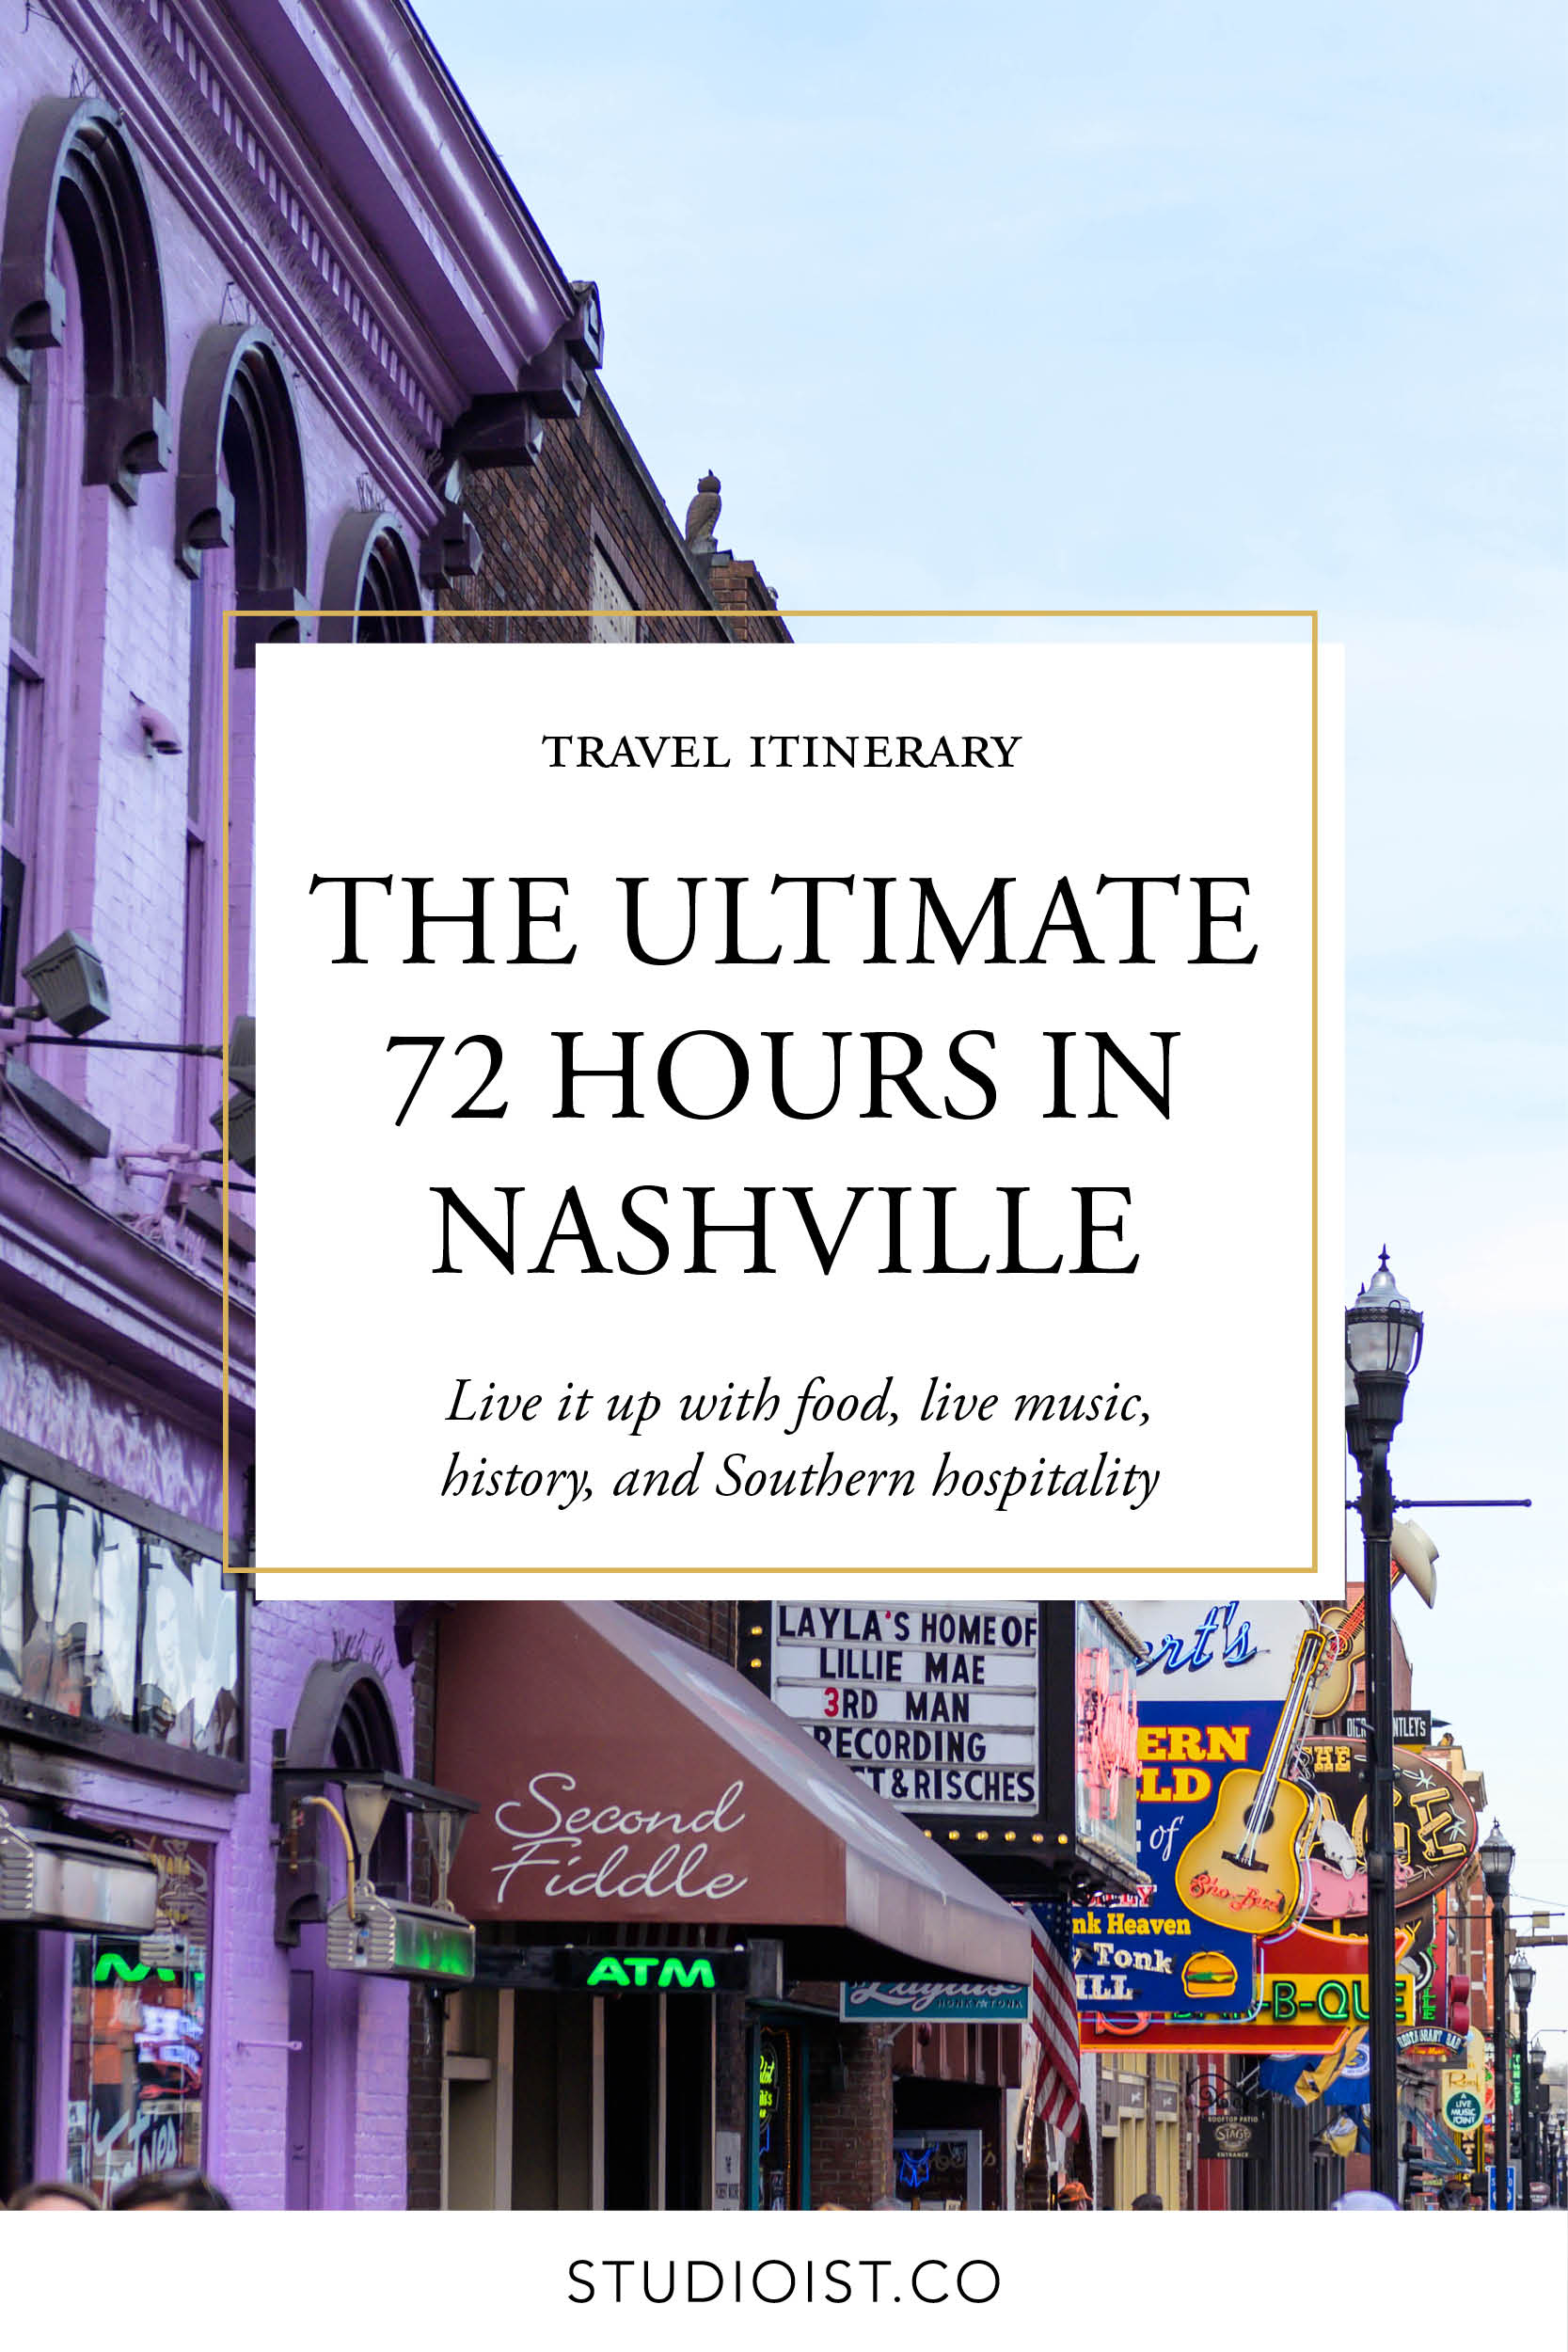 Studioist_Pinterest Design Travel_Nashville 72 Hour Itinerary.jpg